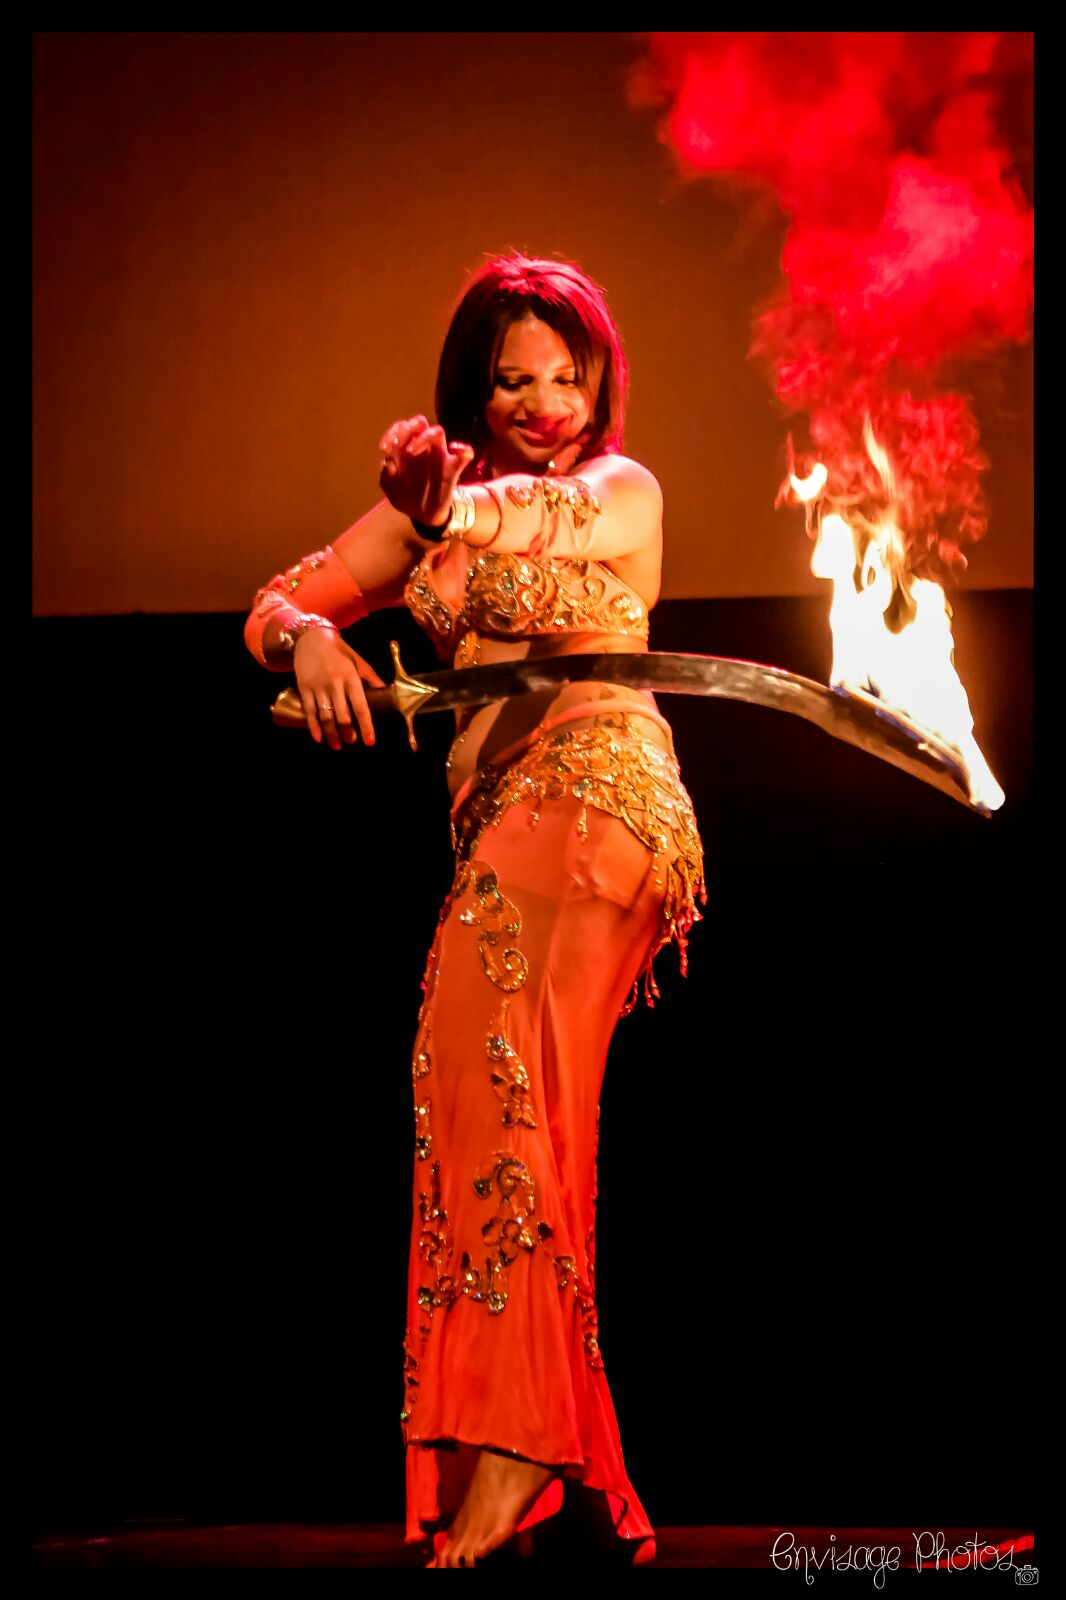 Cherri Fire Sword Belly Dance